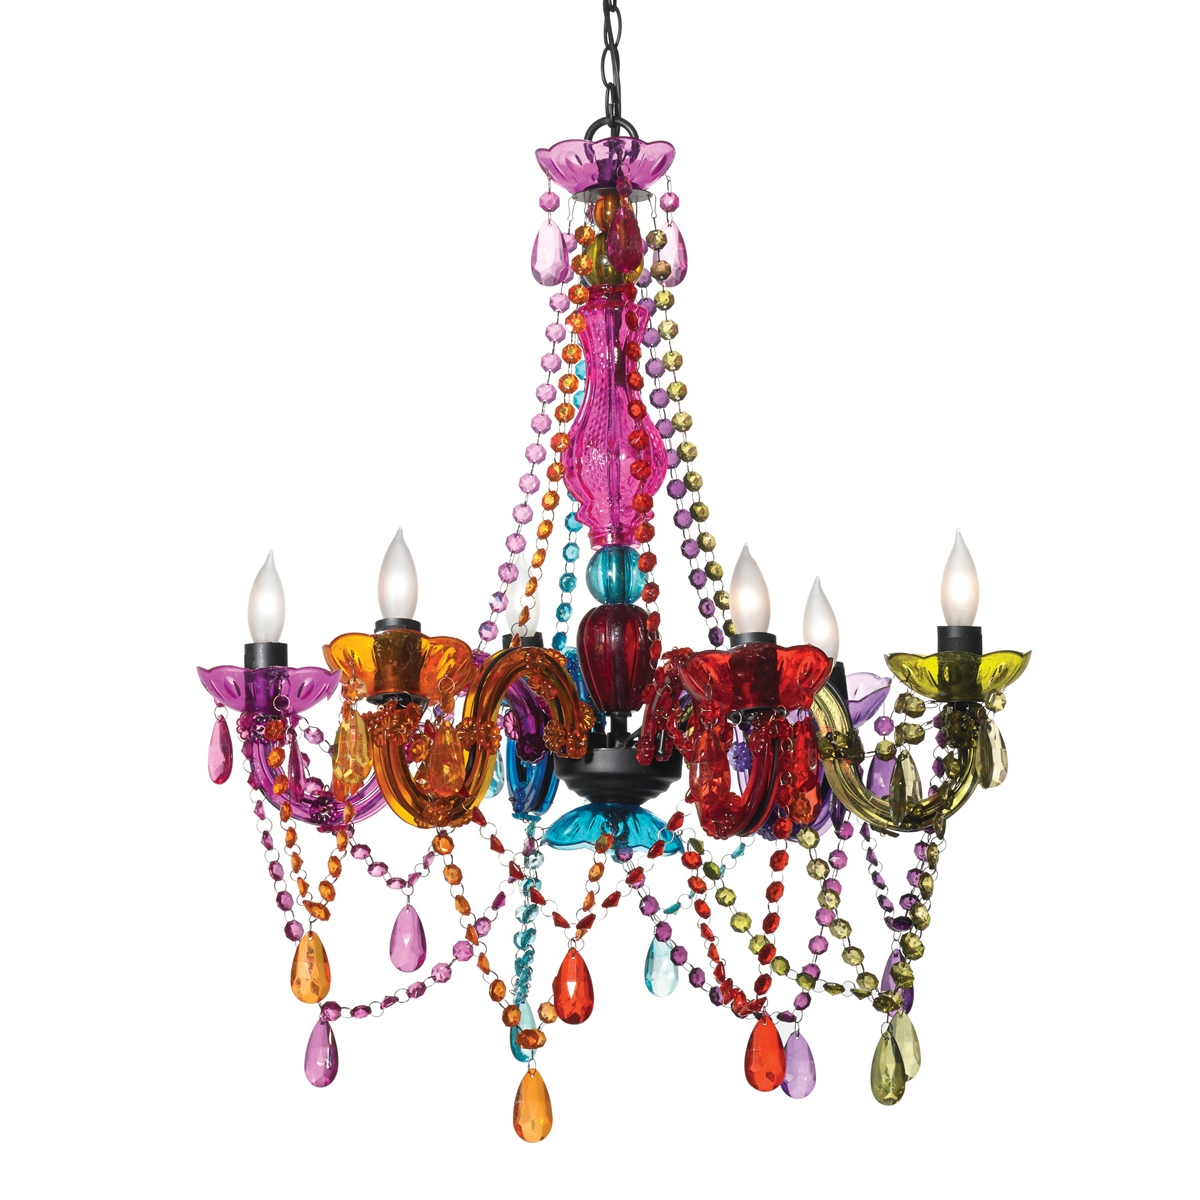 Chandelier Interesting Colorful Chandelier Fascinating Colorful With Regard To Gypsy Chandeliers (View 13 of 25)